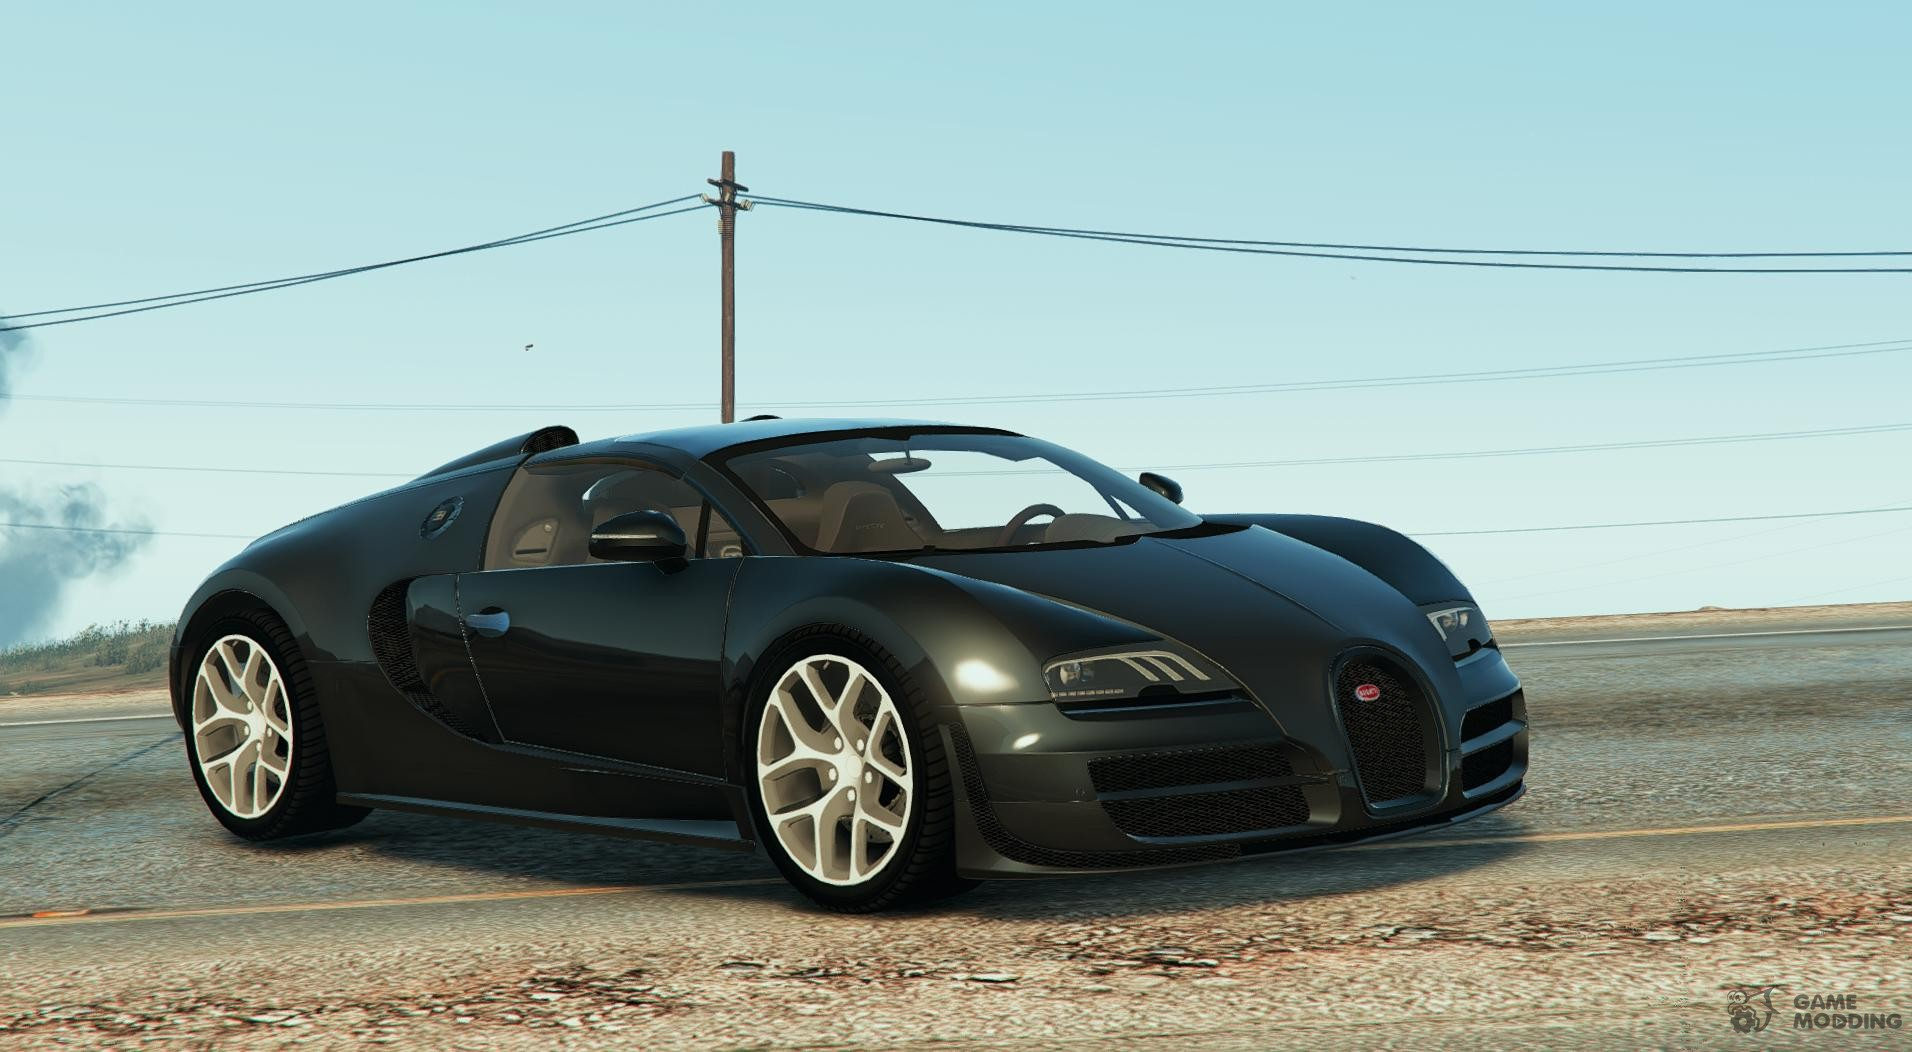 450a8f60b3735c81178533716499504055d418e87b90c78483eb7be3c1b43507 Wonderful Bugatti Veyron Xbox 360 Games Cars Trend